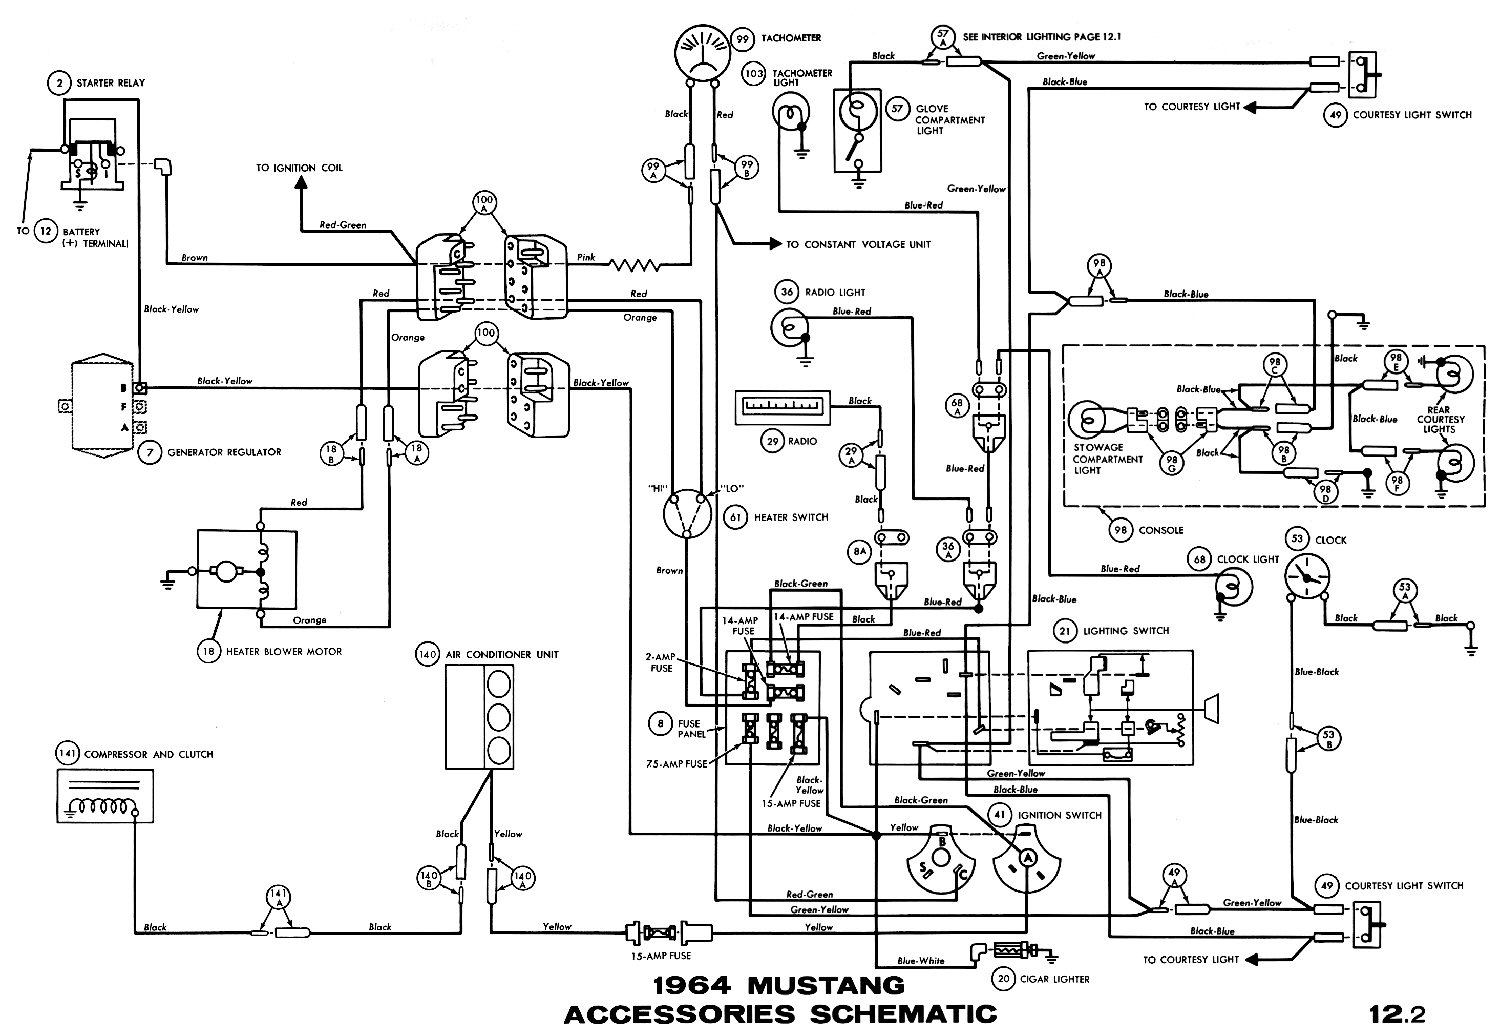 86 mustang radio wiring diagram 76 nova wiring diagram